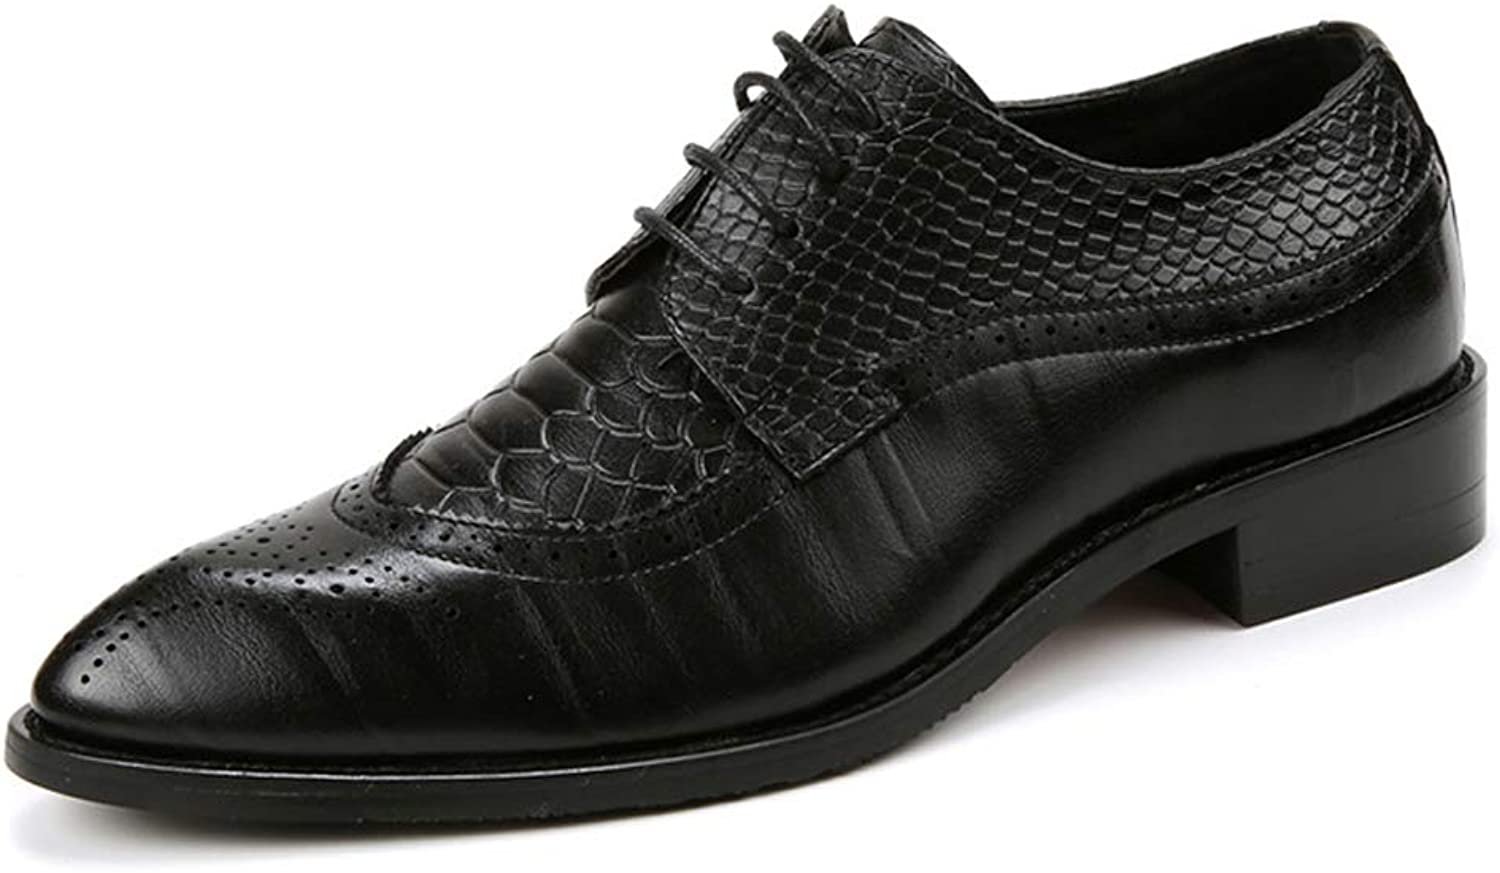 Mens Business Derby Pointed Toe Lace up Leather Rubber Sole Wedding Fashionable Uniform Vintage Office Brogue Black Brown Wine red